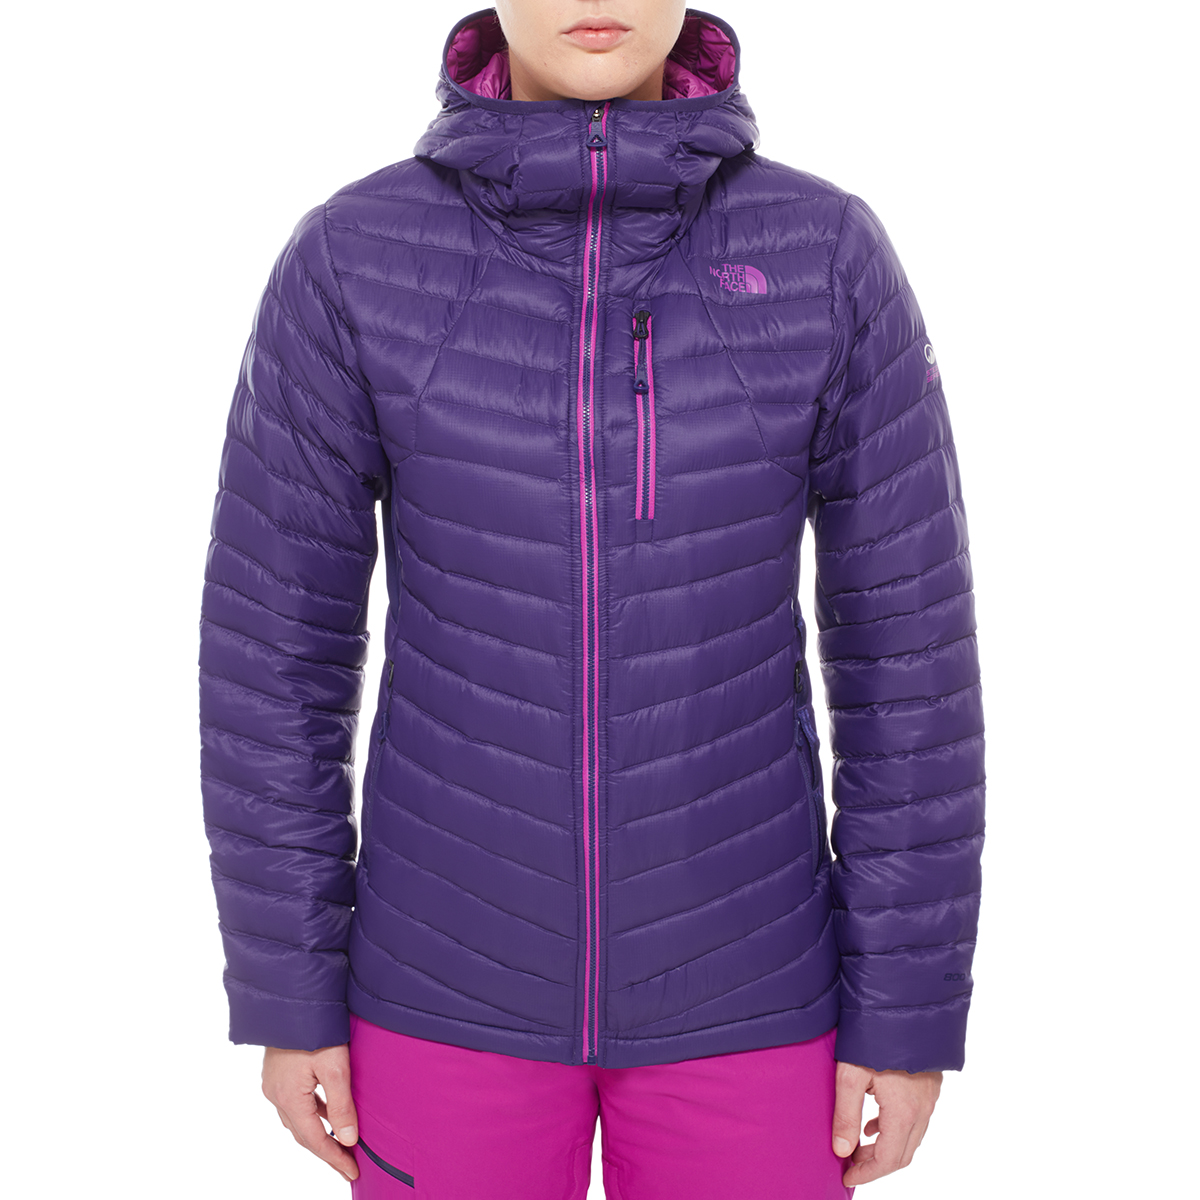 En Insulating Jackets North Face Low Pro Hybrid Jacket Womens 2016 2015 Women North Face